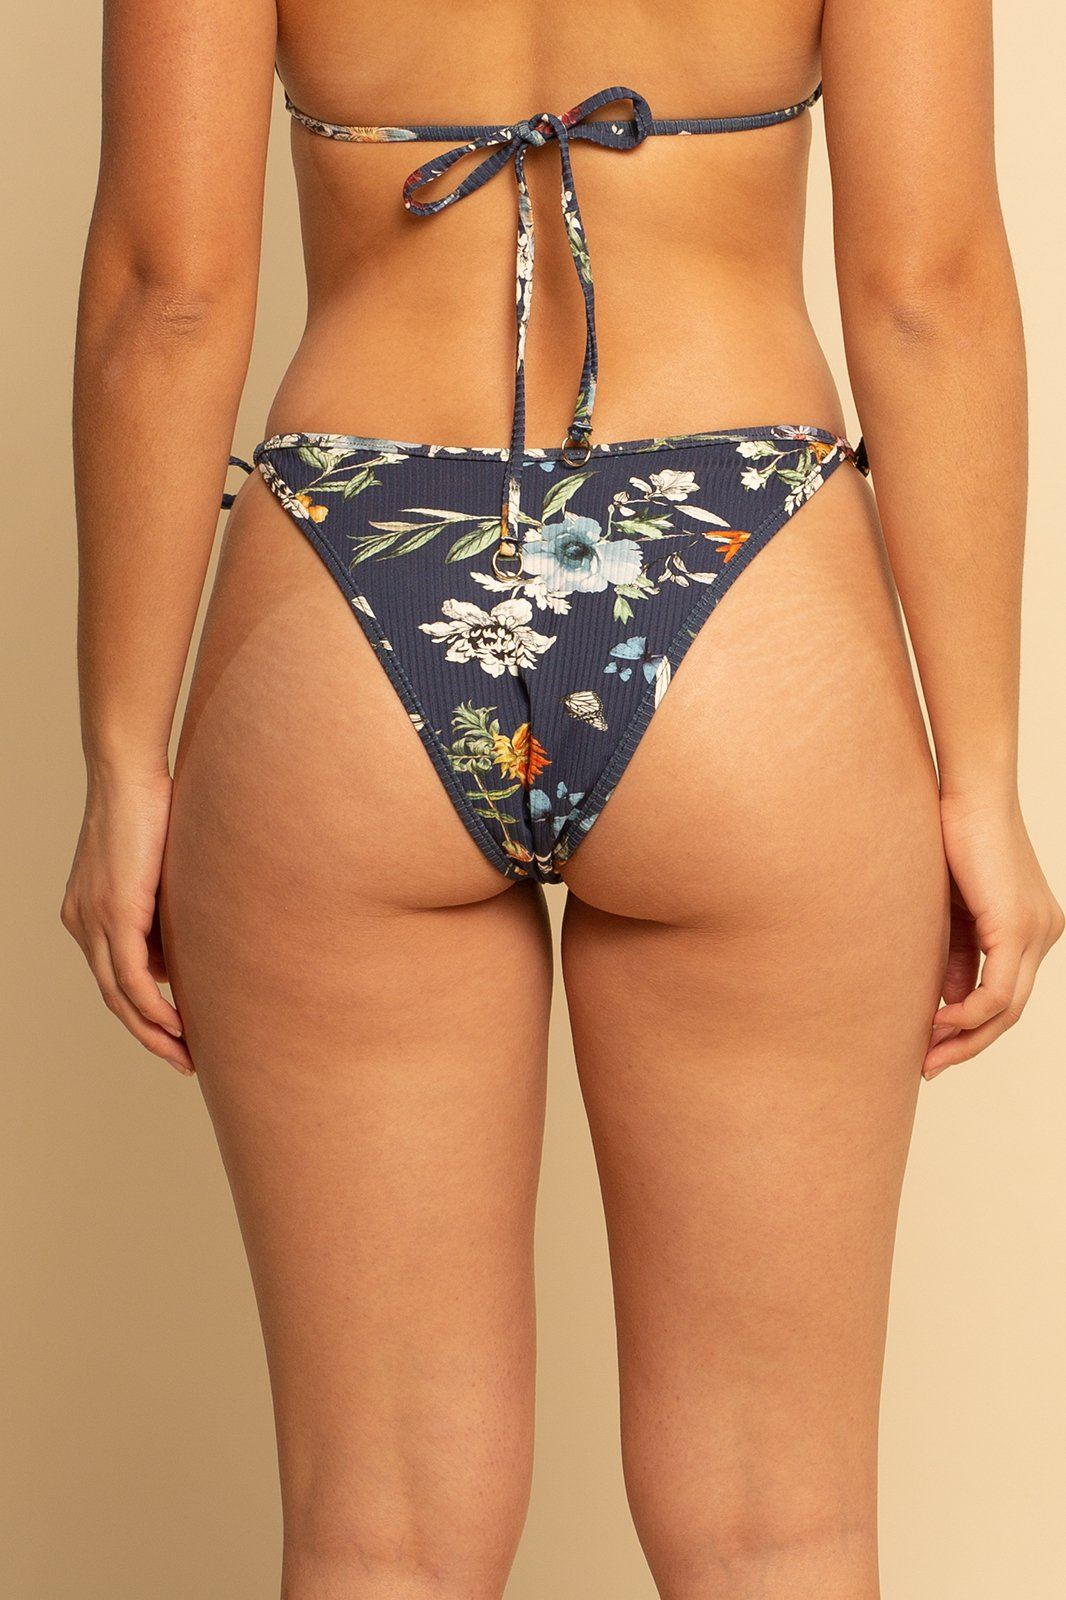 Bahamas High Hip Ring Bottom - Mystical Floral